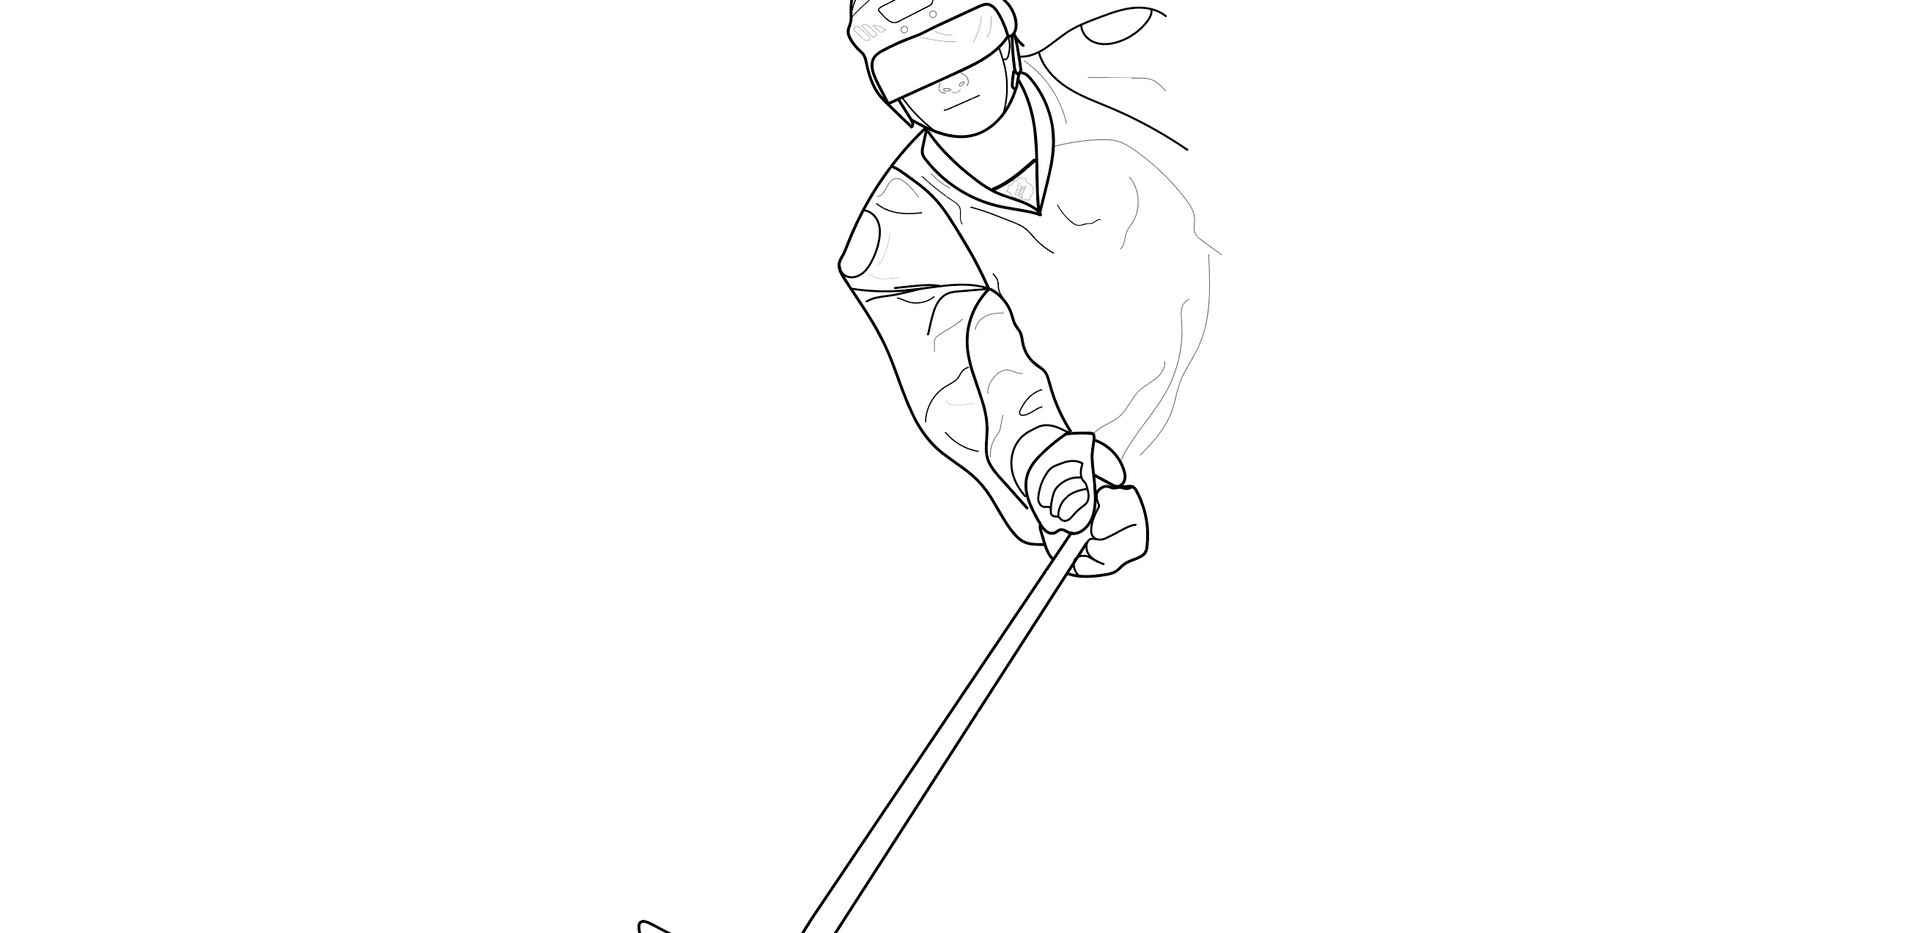 Hockey Sketch